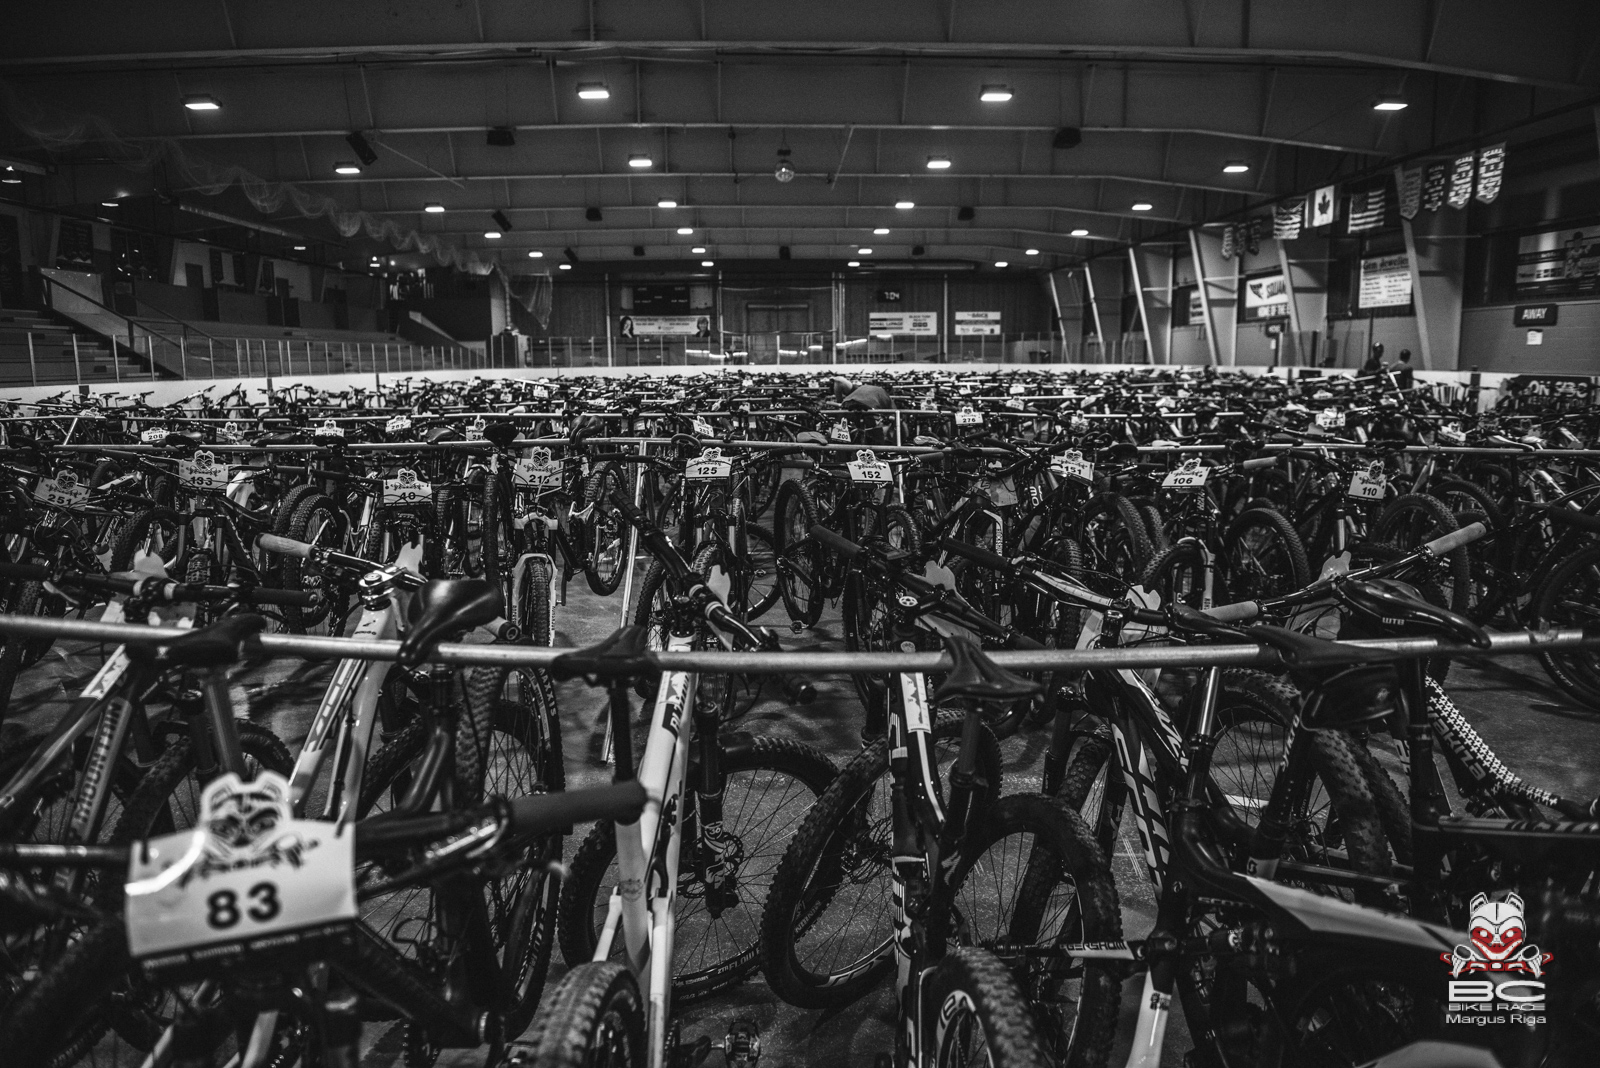 Bikes waiting for the day to begin. Photo: Margus Riga